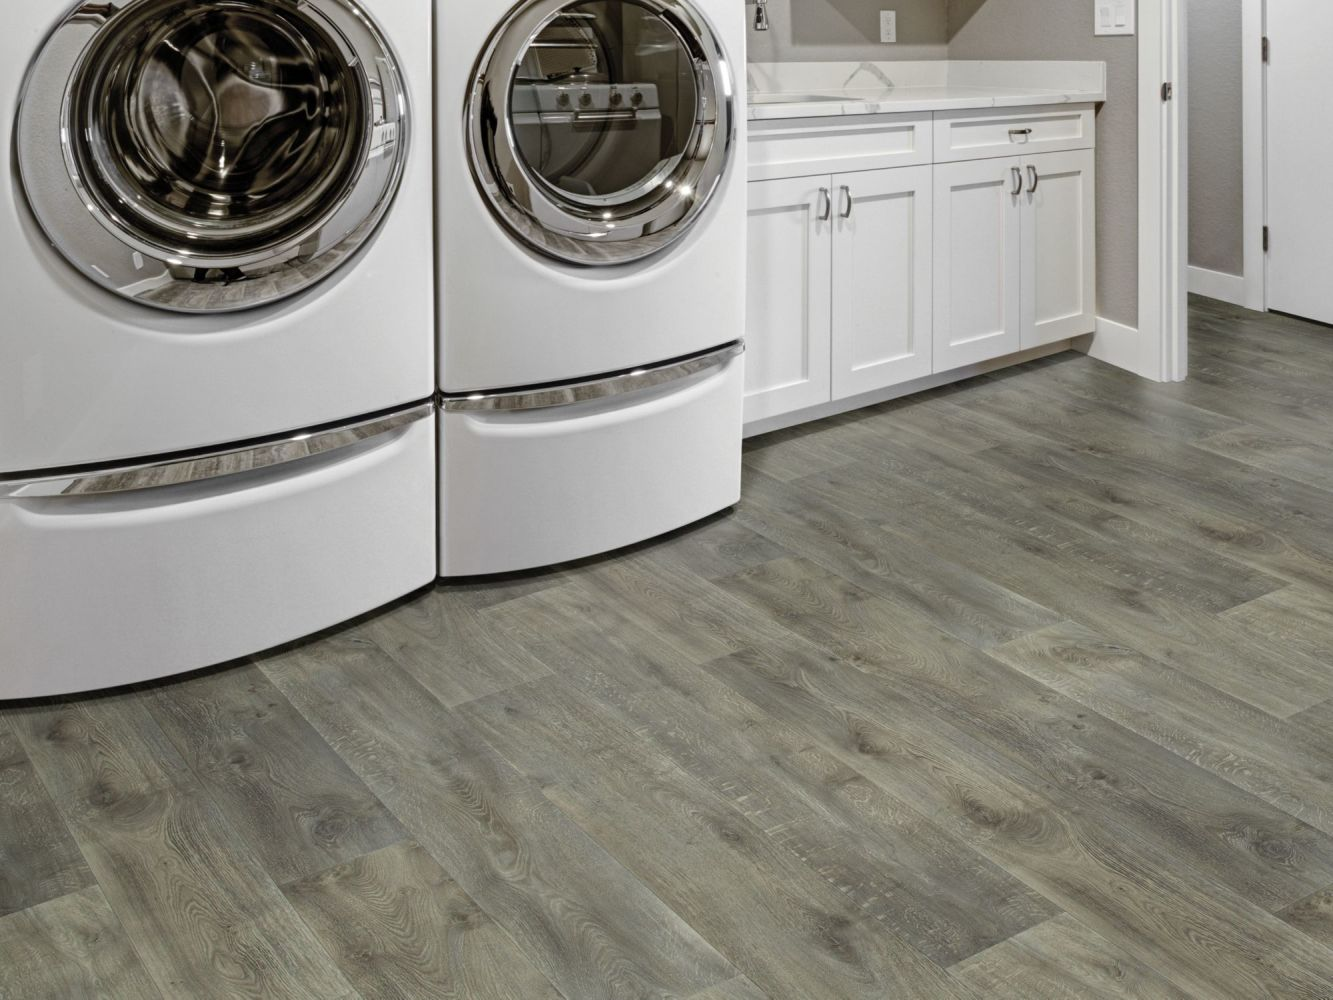 Shaw Floors Resilient Residential Sublime Vision Aries 05096_VG090